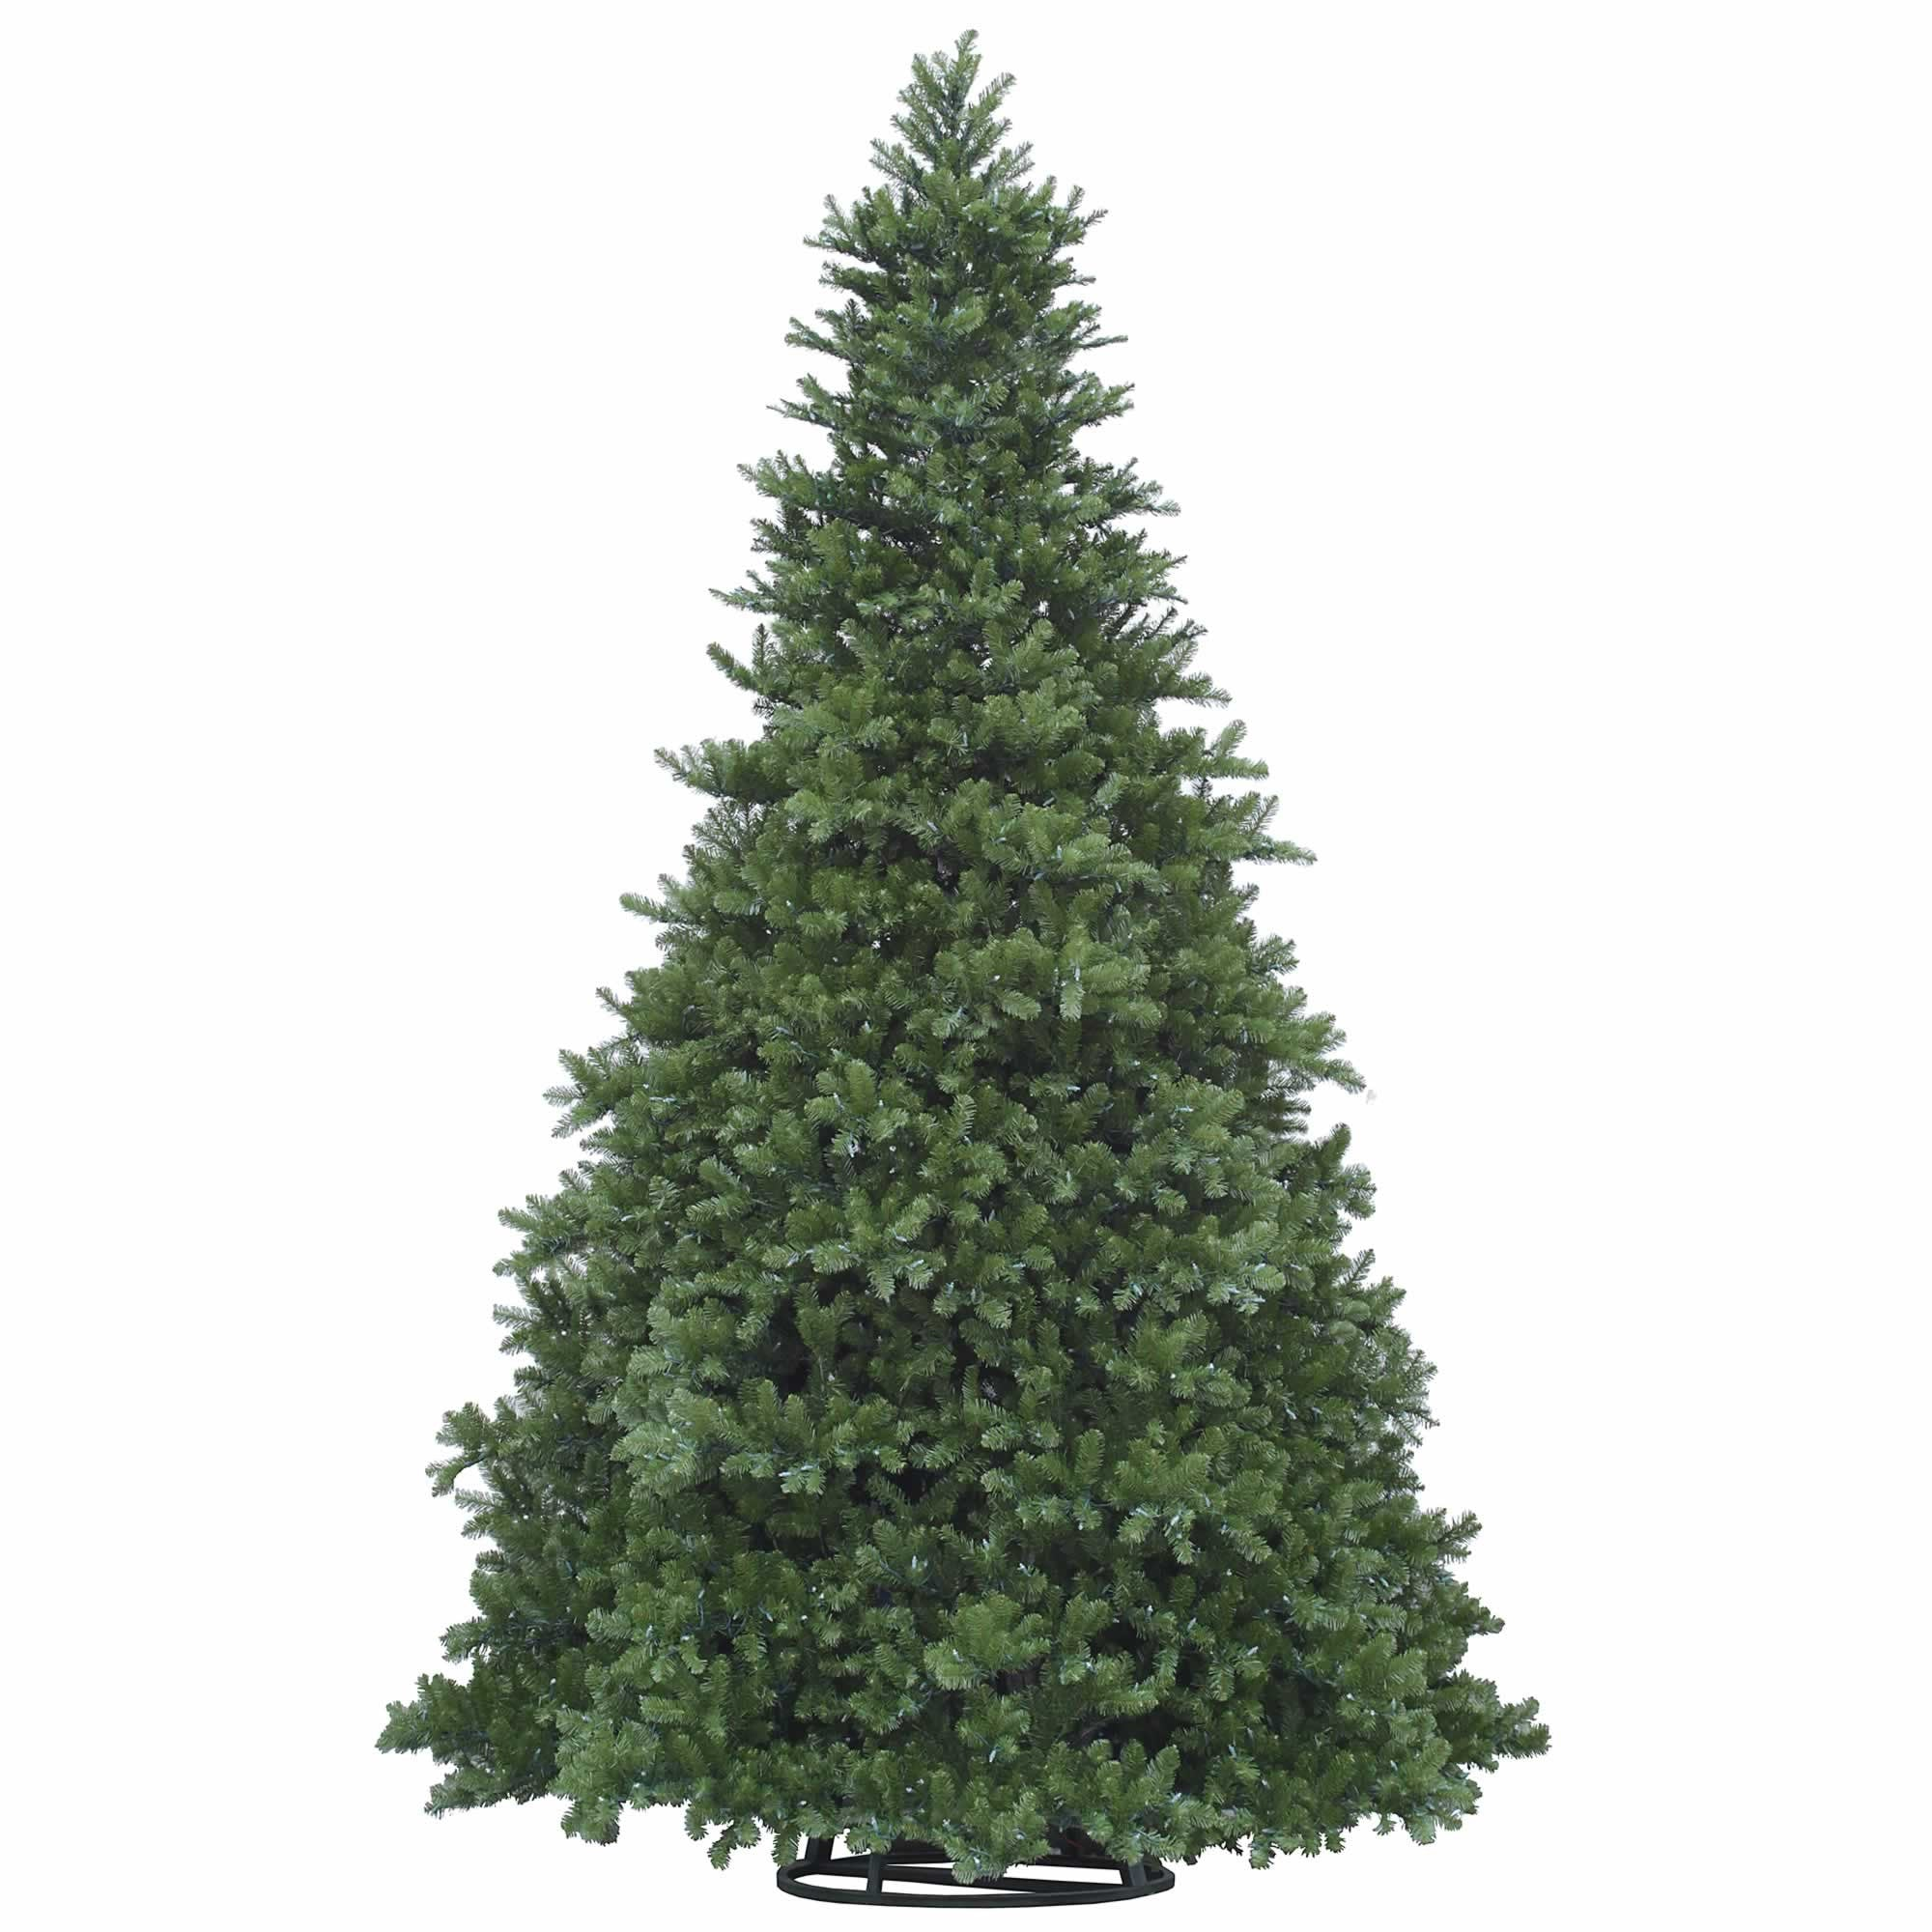 Commercial Christmas Trees From 12 To 100 In Height: Buy 12 Ft Artificial Christmas